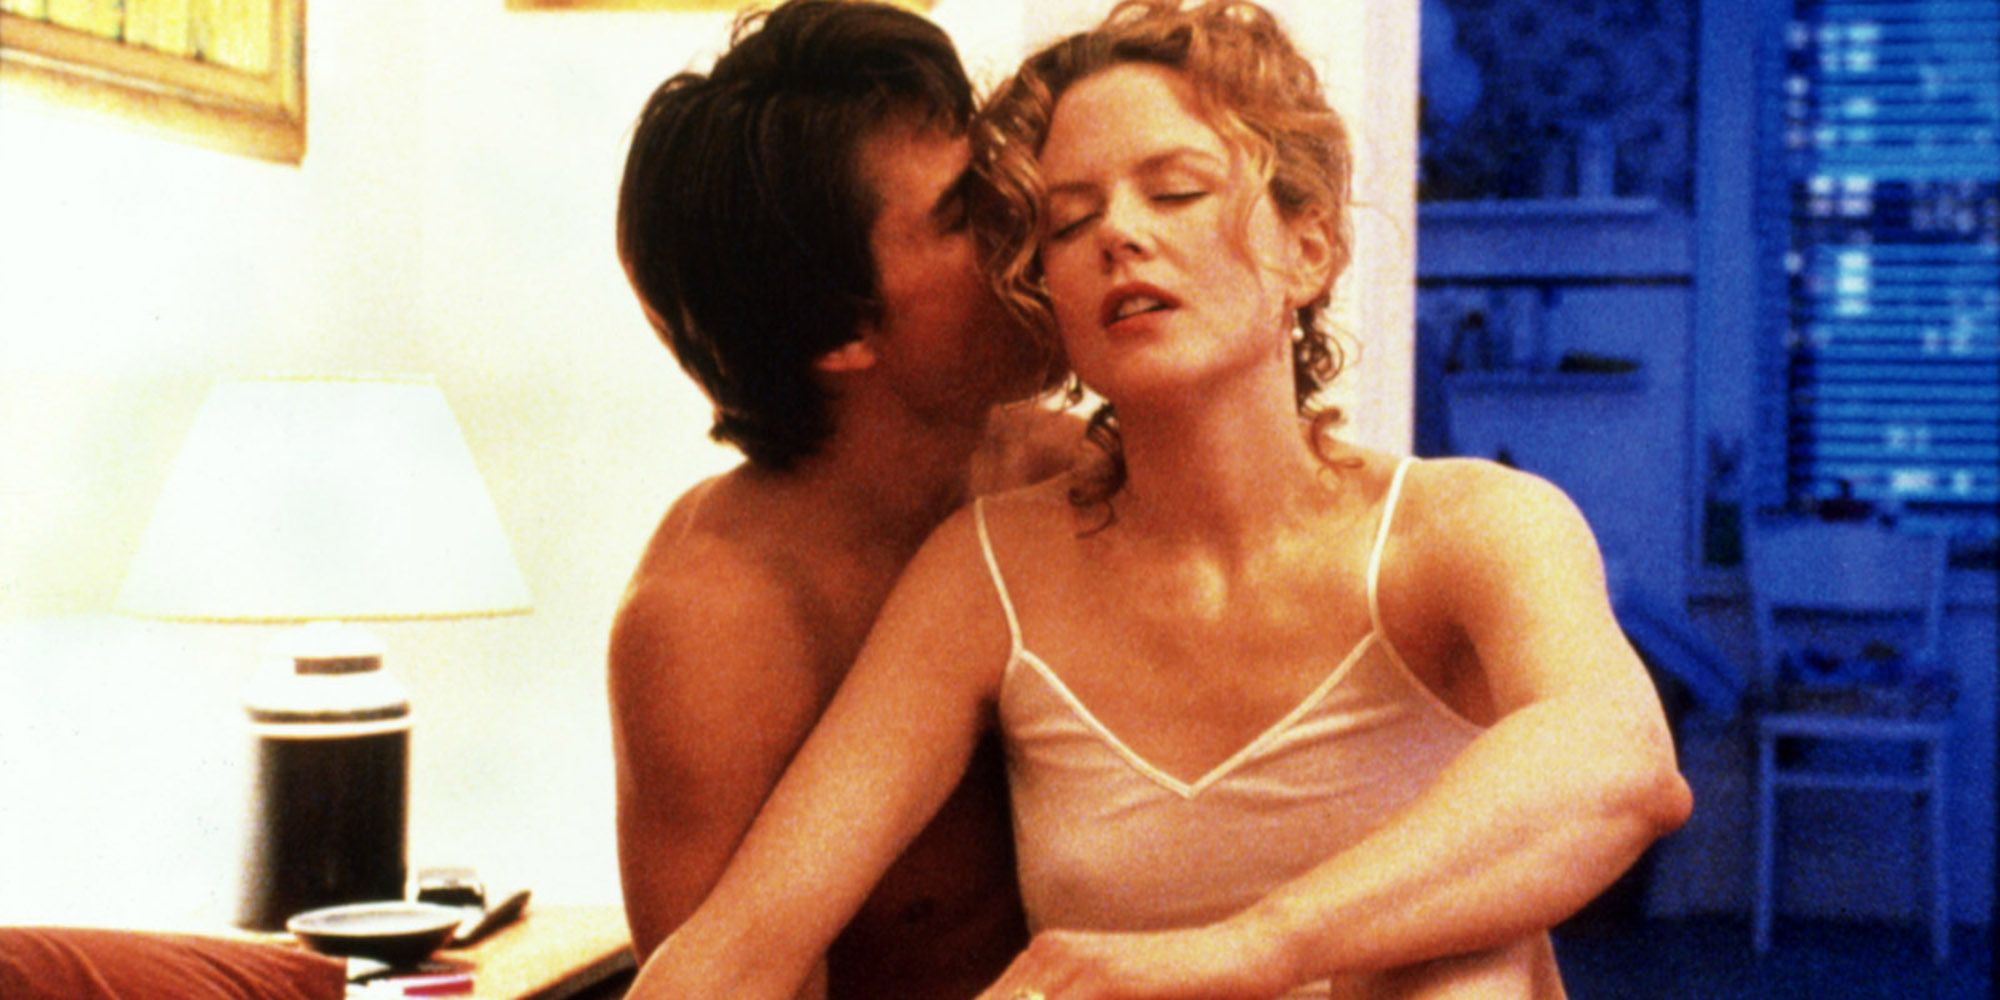 44 Best Movies About Sex of All Time - Hottest Sex Films